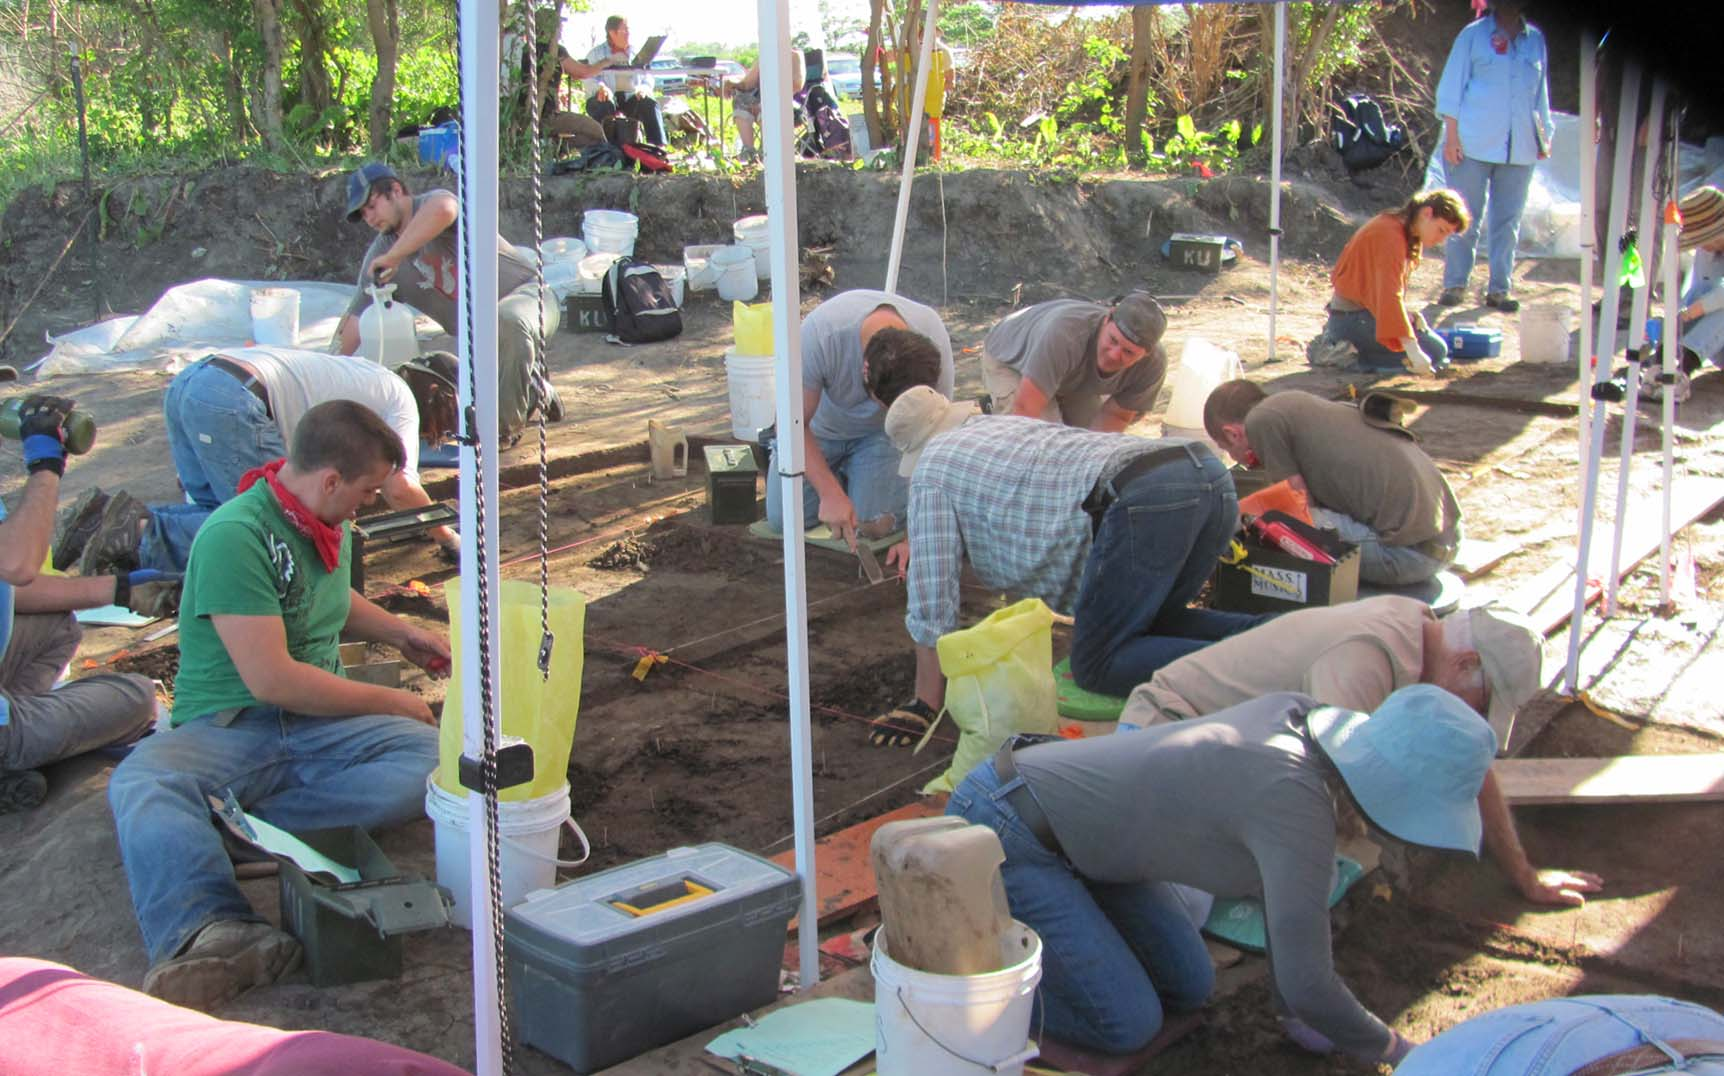 People working at archeology excavation site